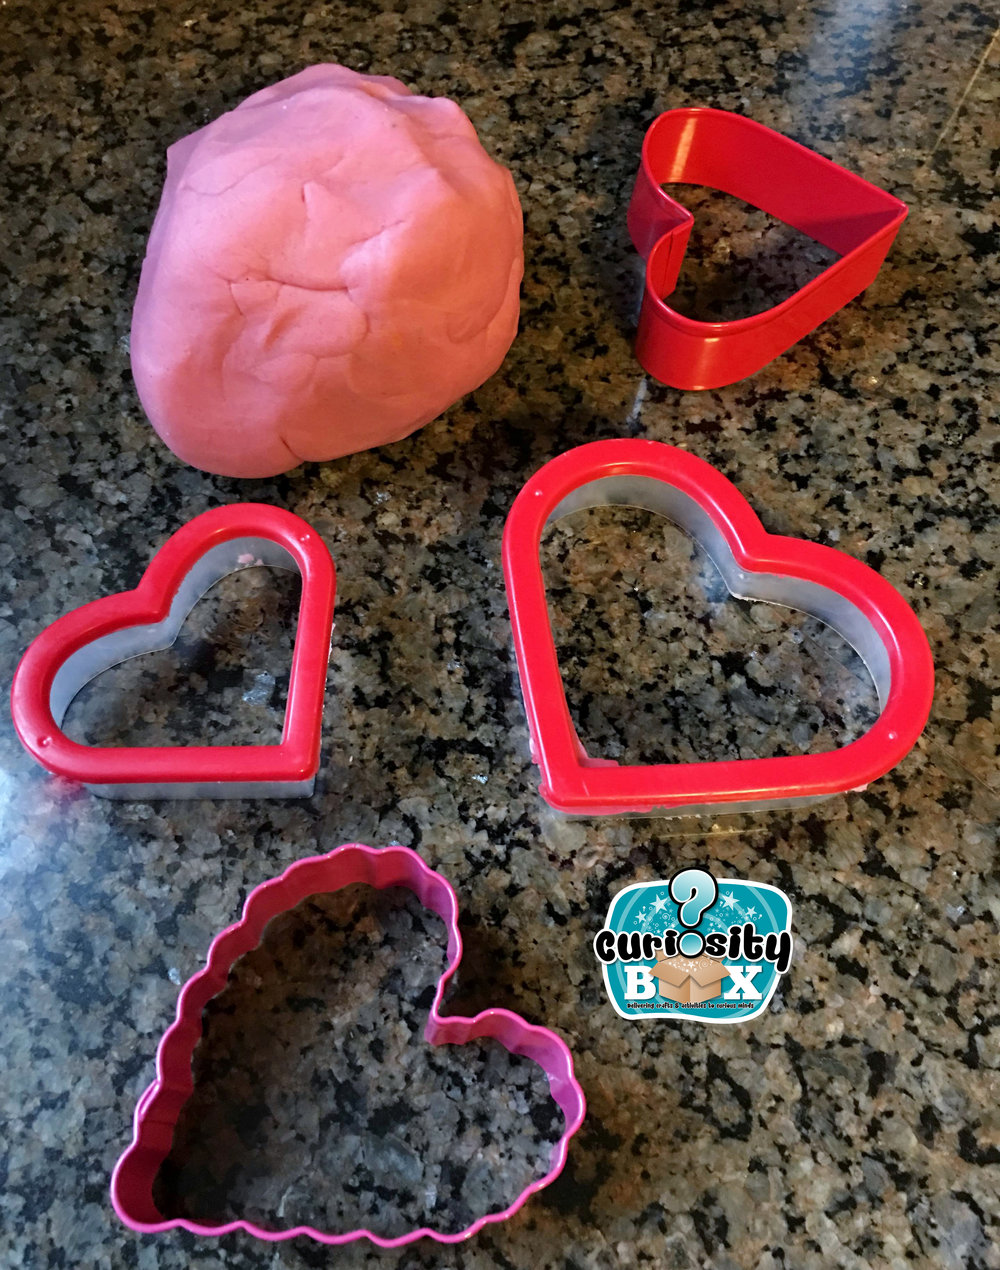 Curiosity Box Valentine Playdoh 2.JPG